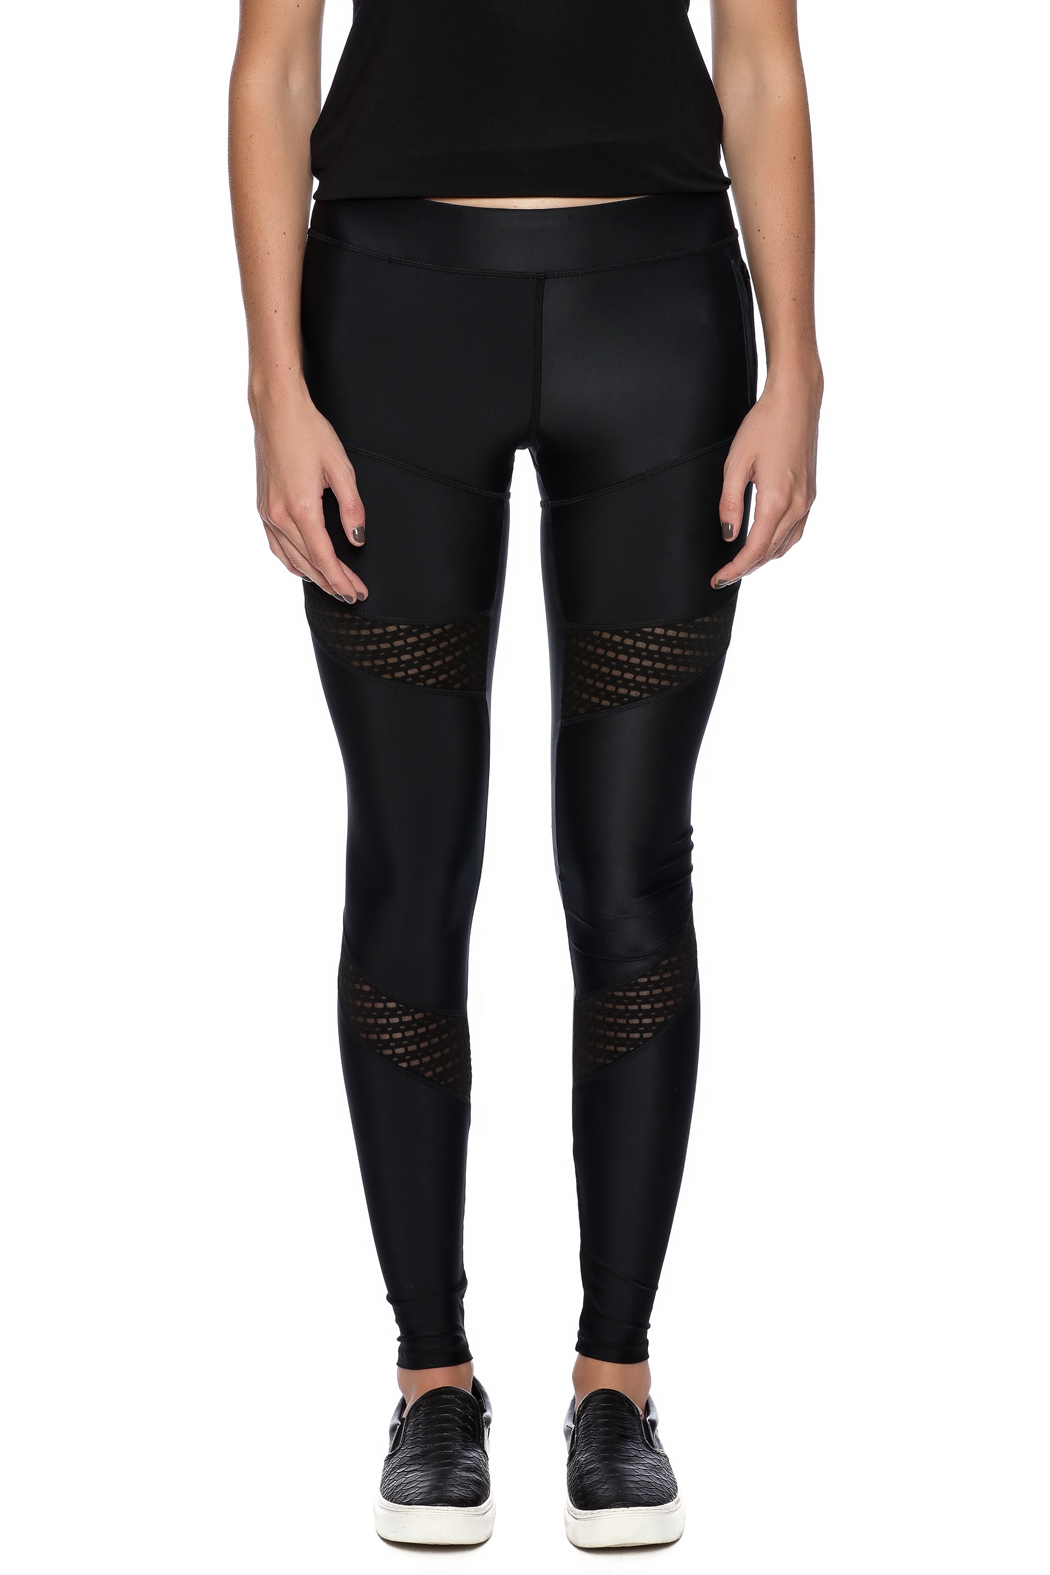 Lovers + Friends Mesh Work Out Leggings - Side Cropped Image